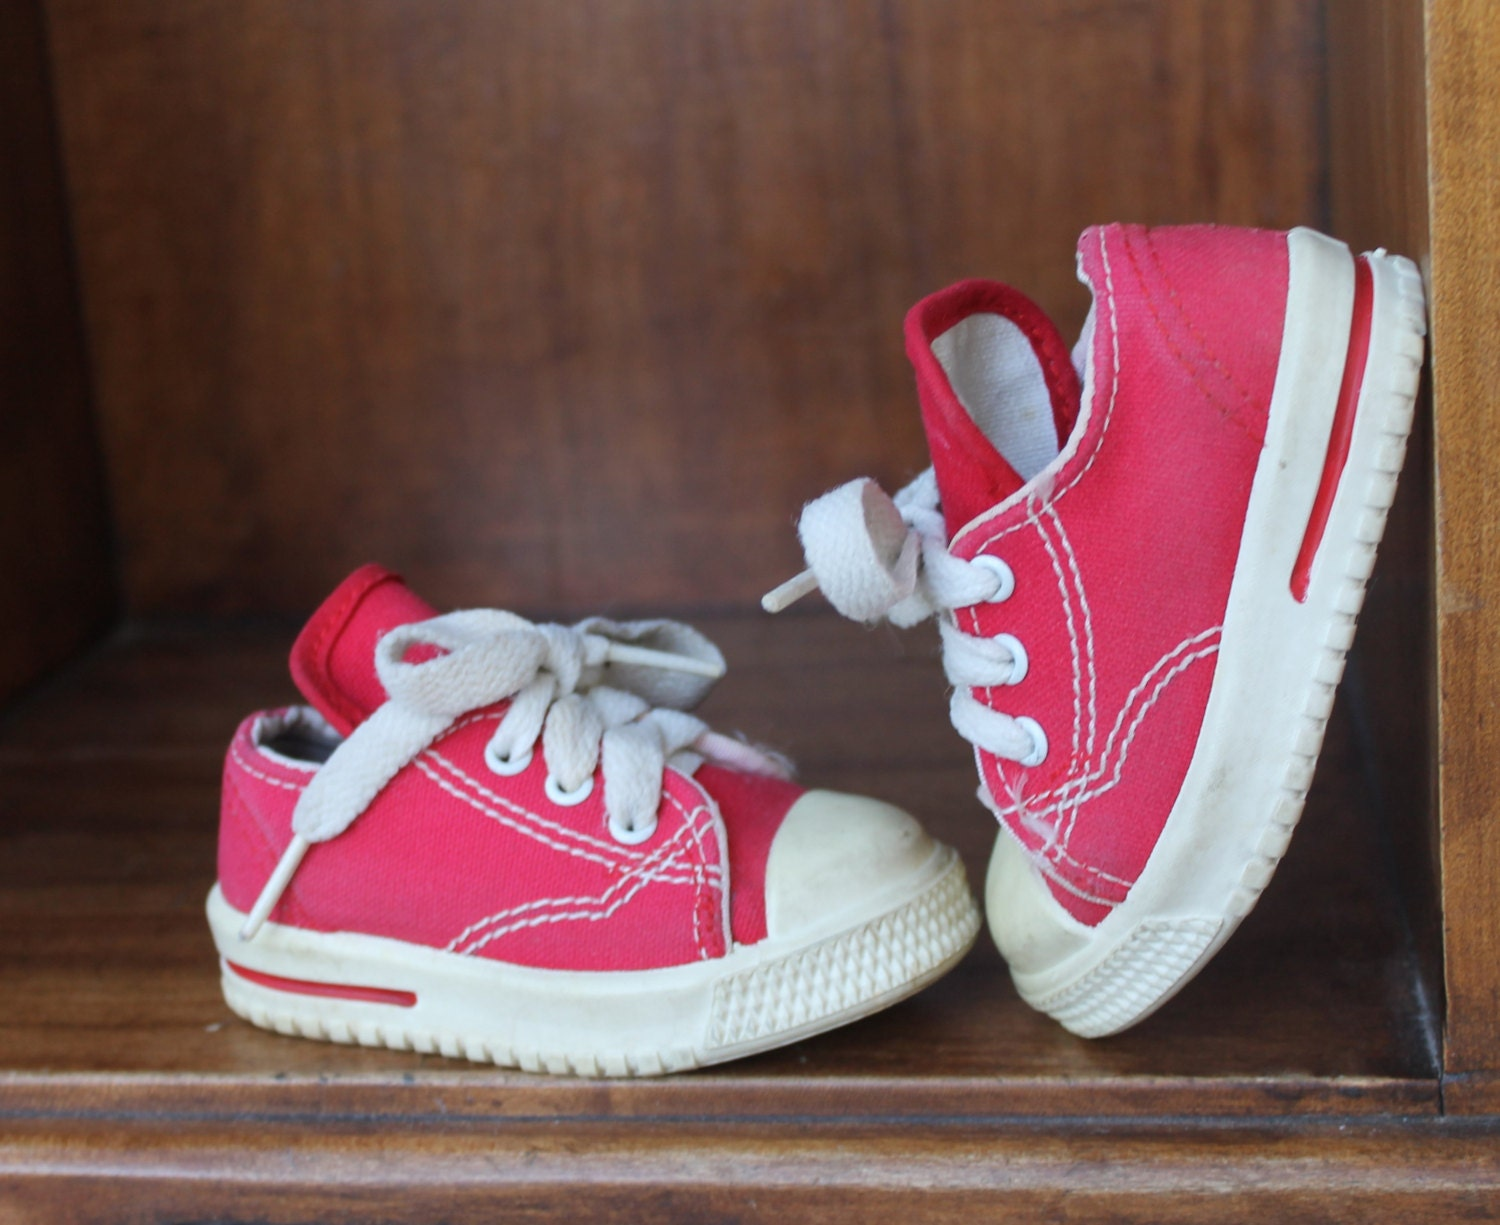 toddler baby sneakers tennis shoes by dyna by